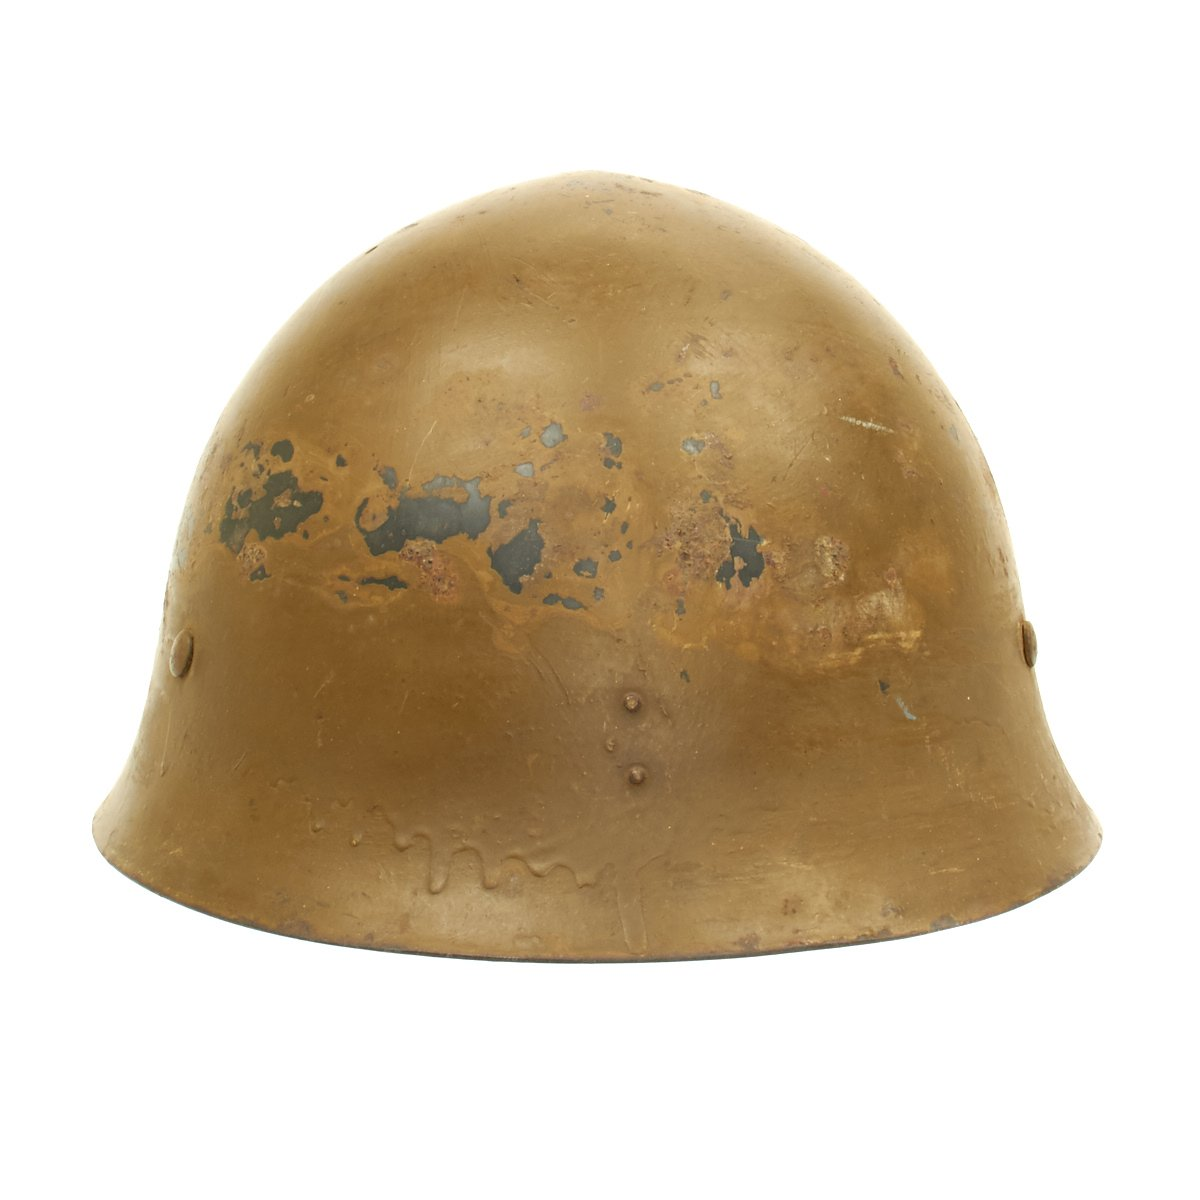 Original Japanese WWII Type 90 Army Helmet with Complete Liner and